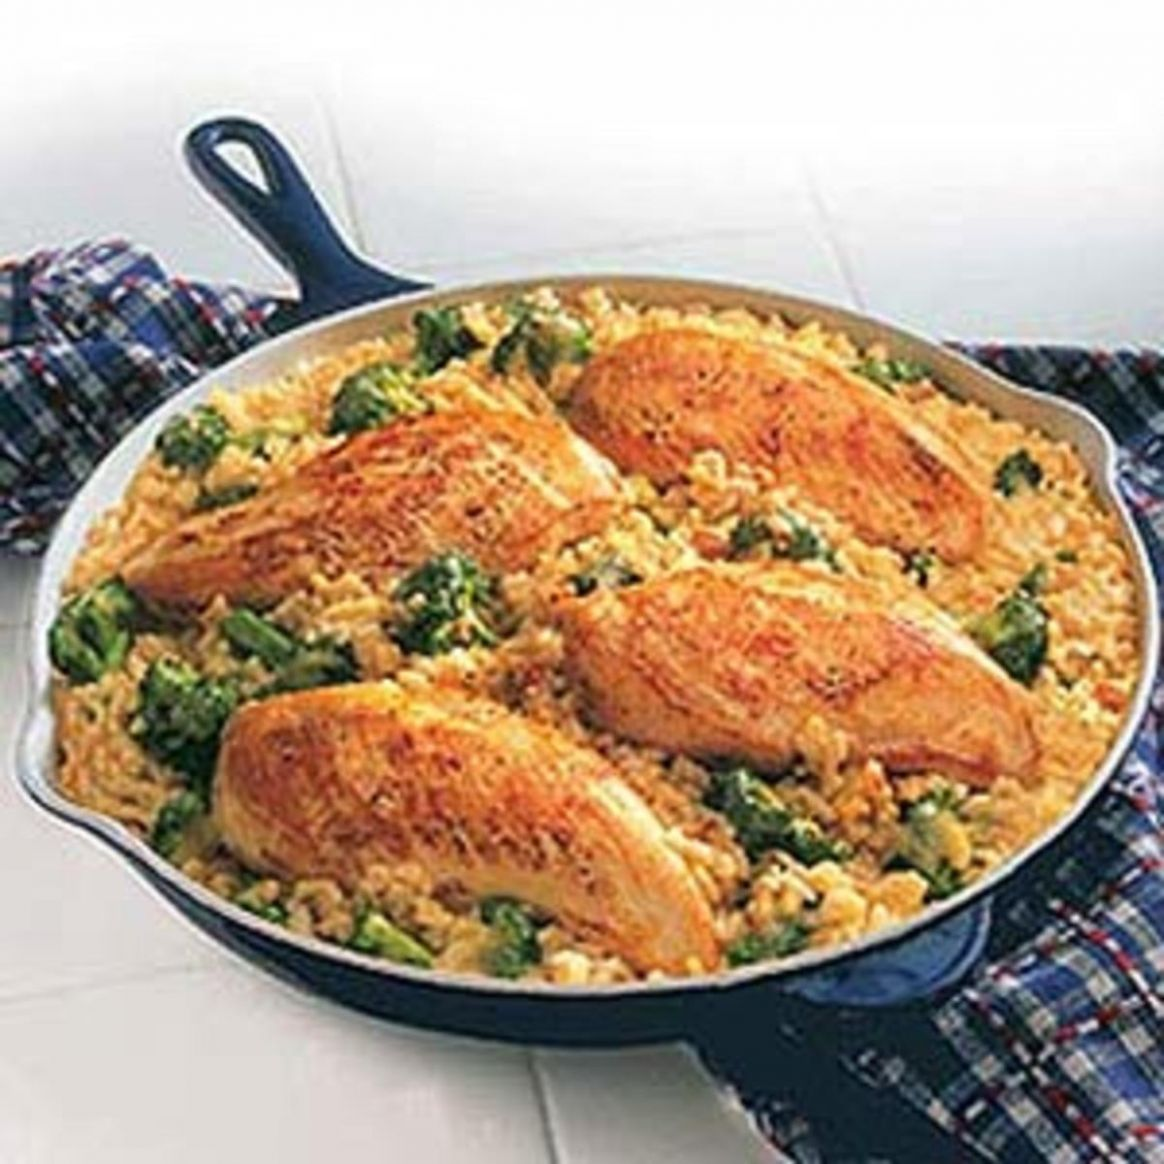 11-Minute Chicken & Rice Dinner - Recipes Chicken Breast And Rice